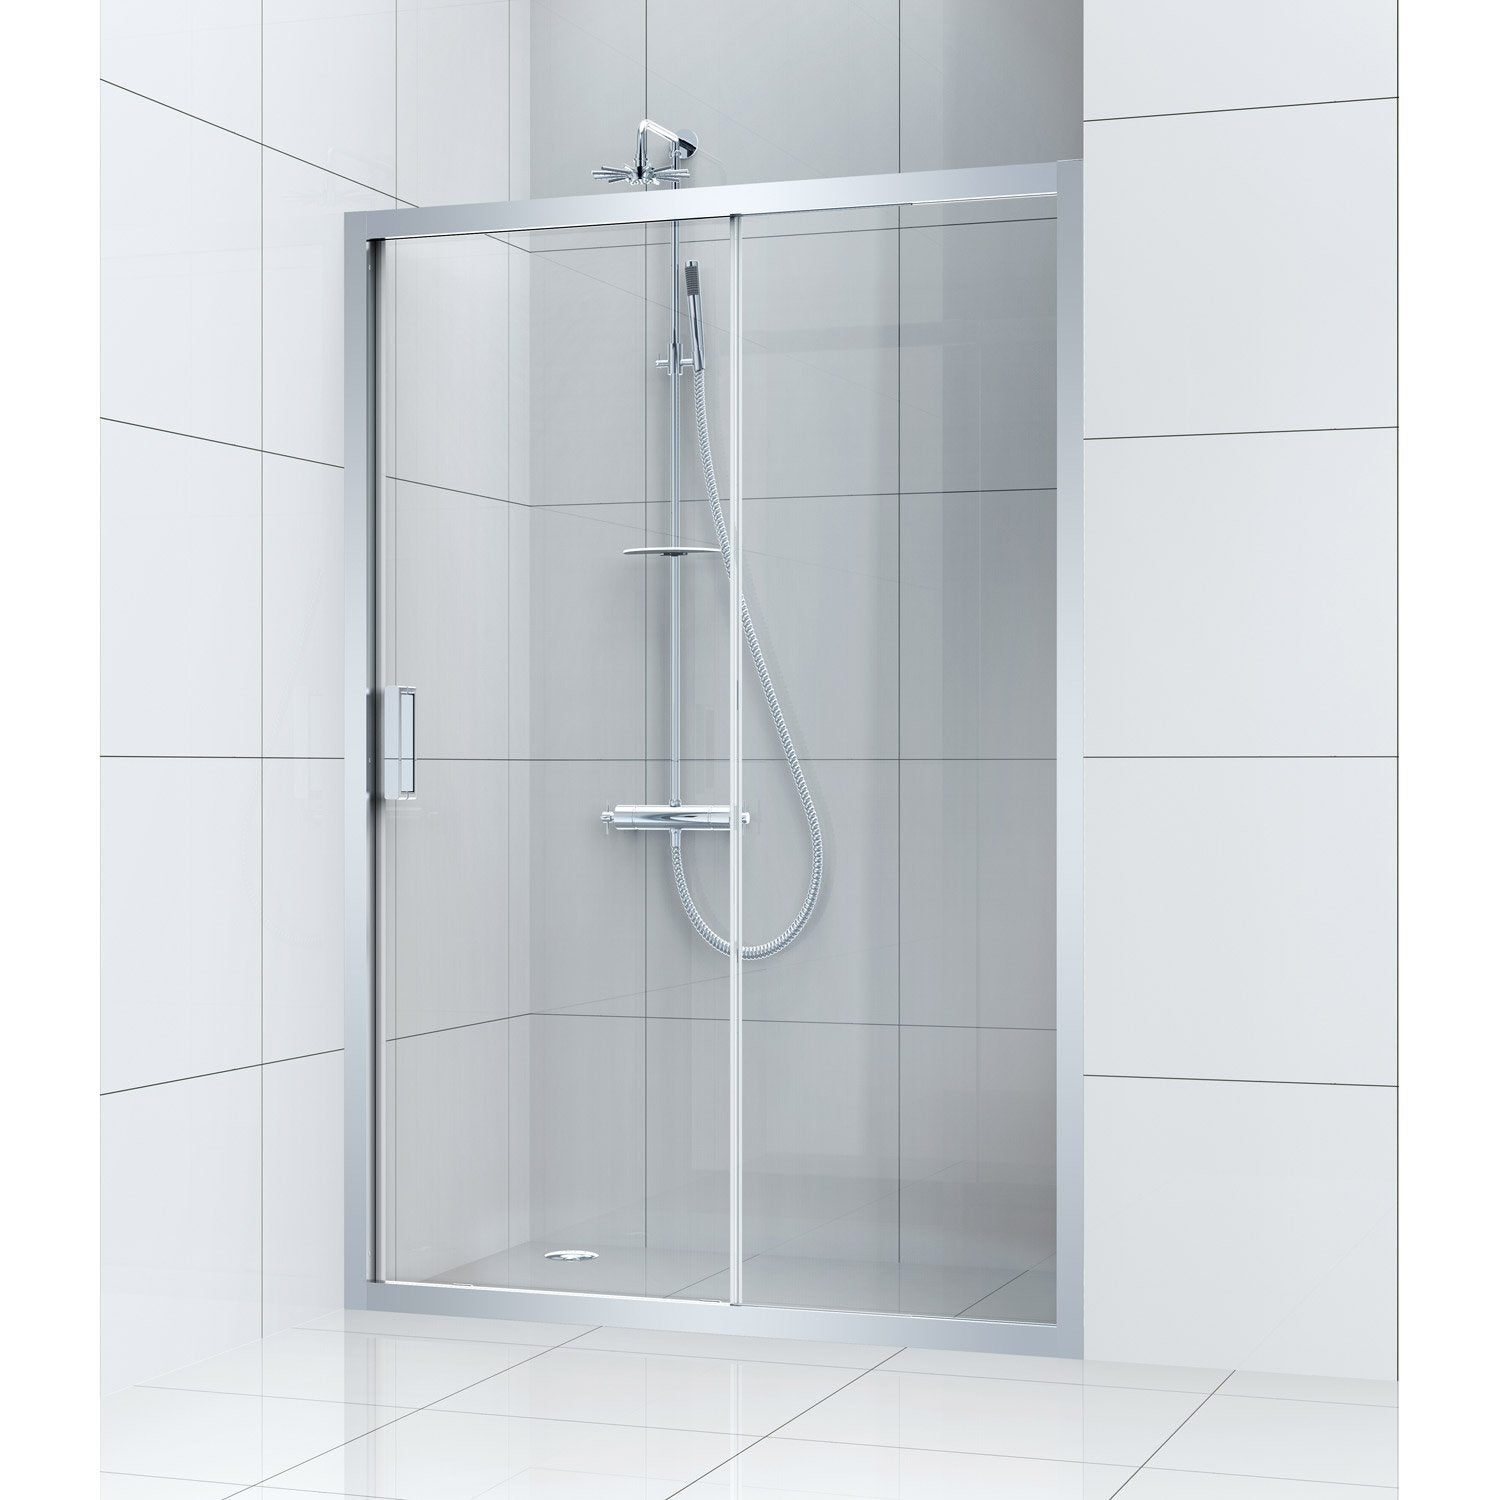 porte de douche coulissante 140 cm transparent charm leroy merlin. Black Bedroom Furniture Sets. Home Design Ideas